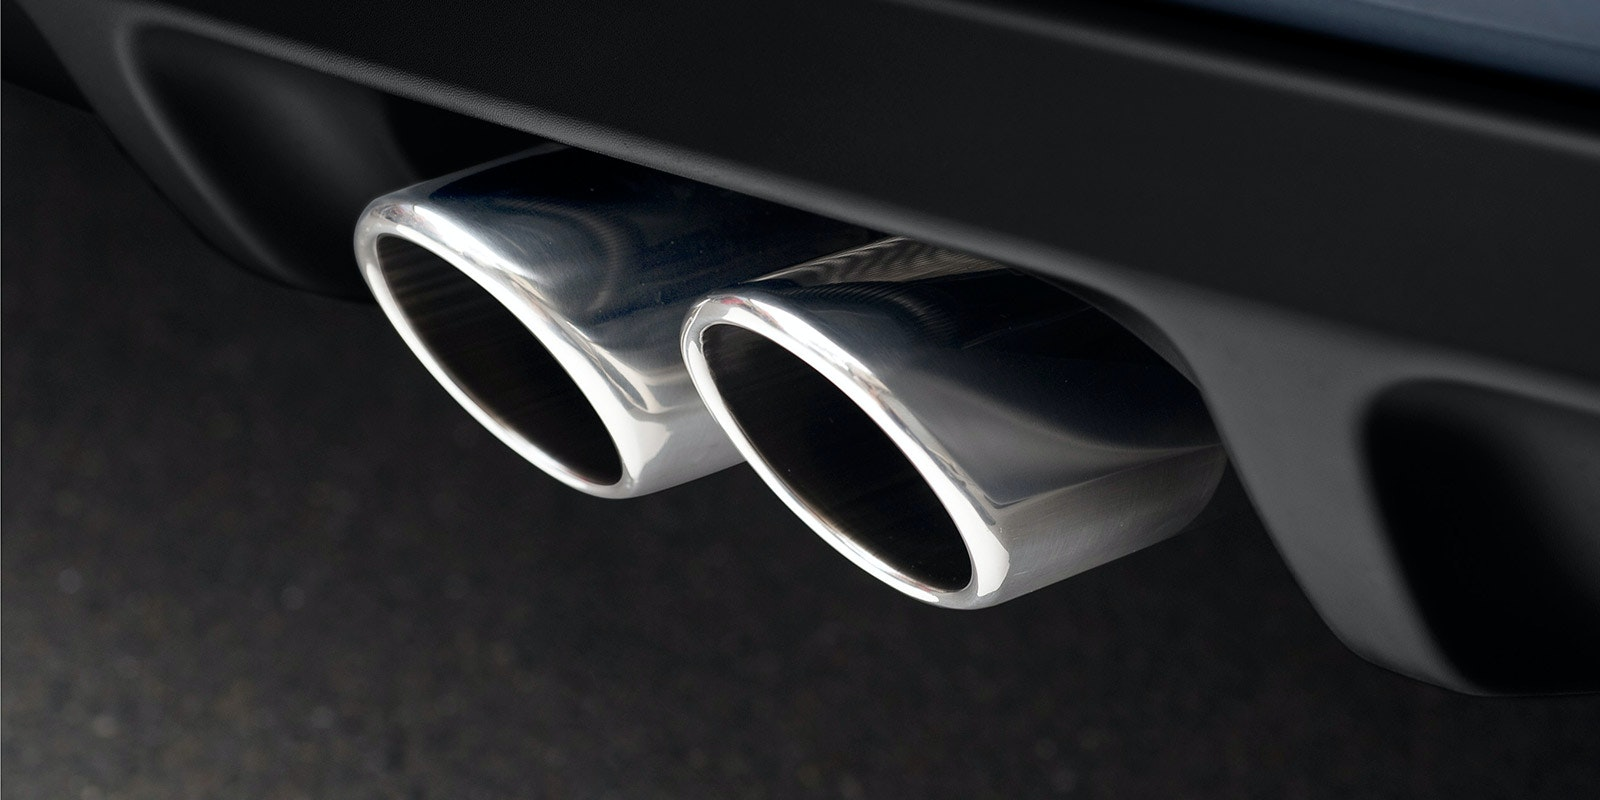 Exhaust pipes wltp rde lead 1.jpg?ixlib=rb 1.1